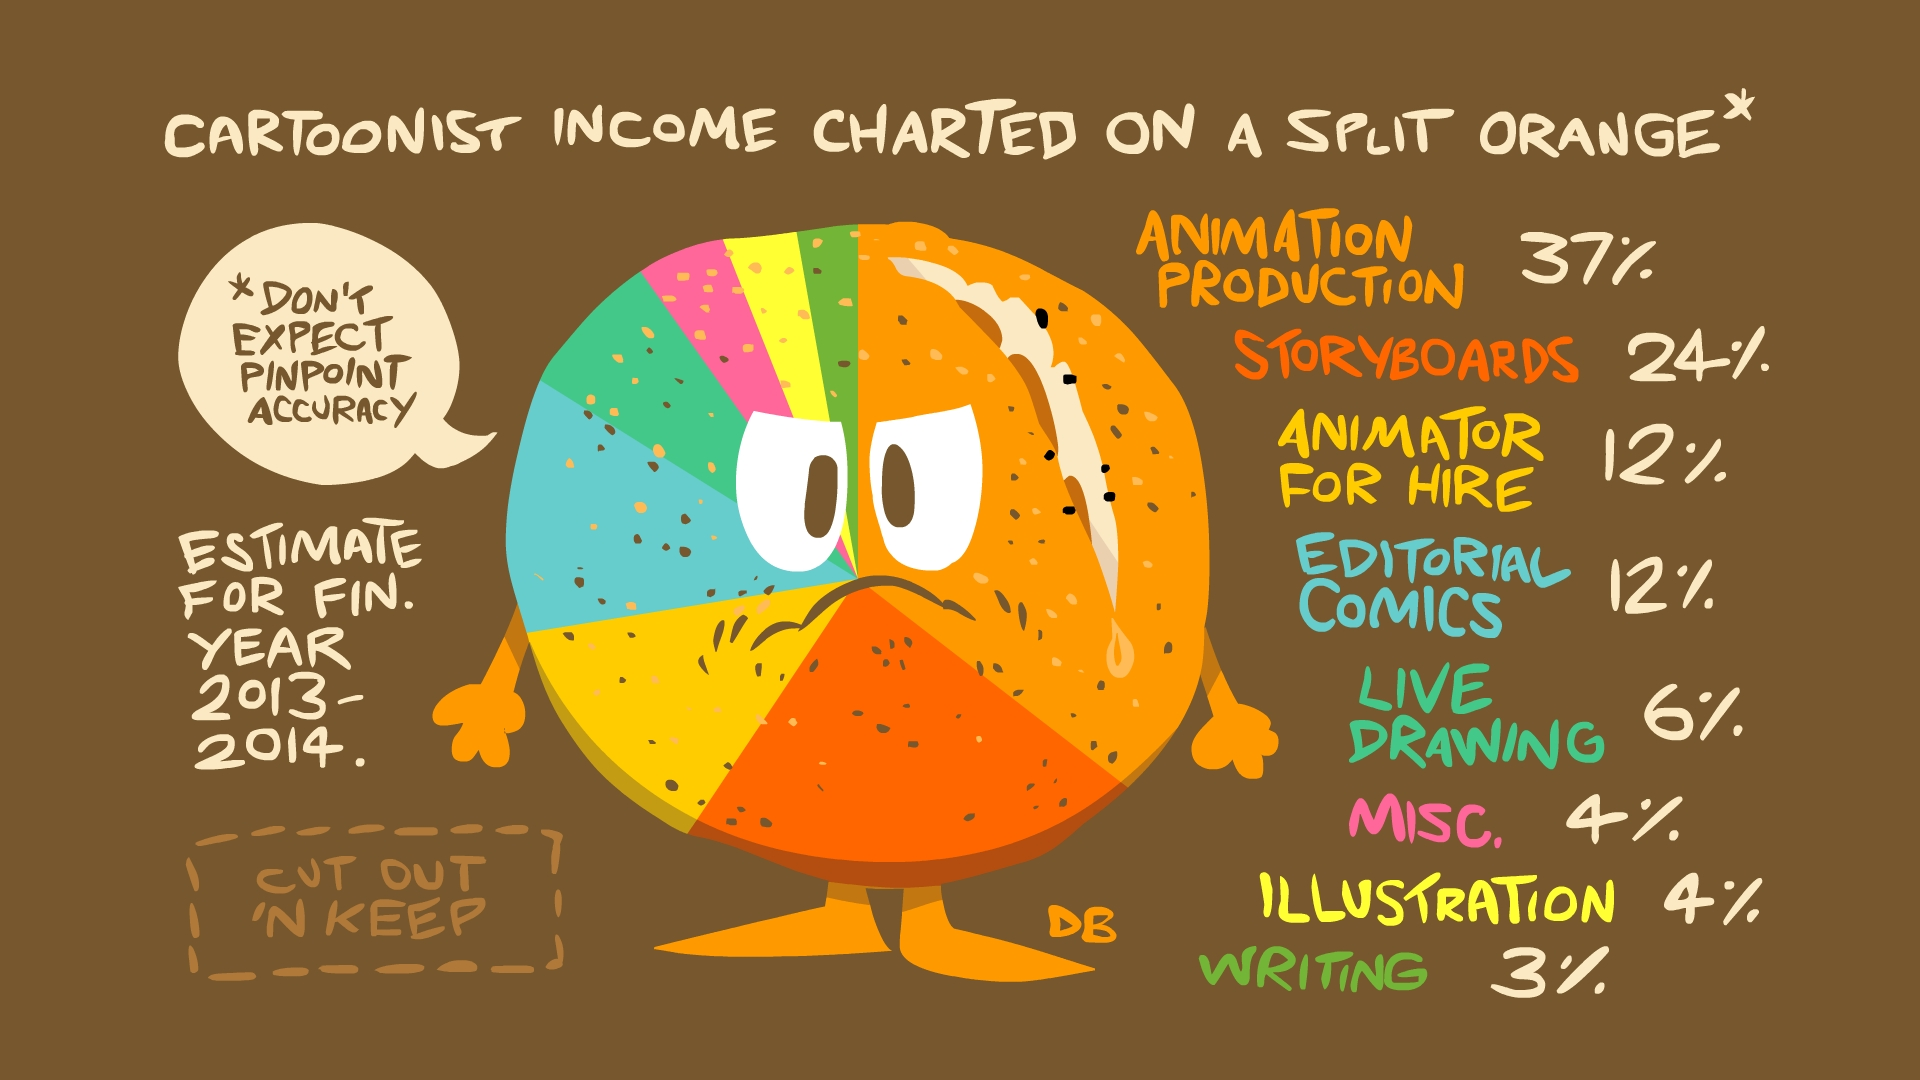 Cartoonist Income Charted On A Split Orange 2014